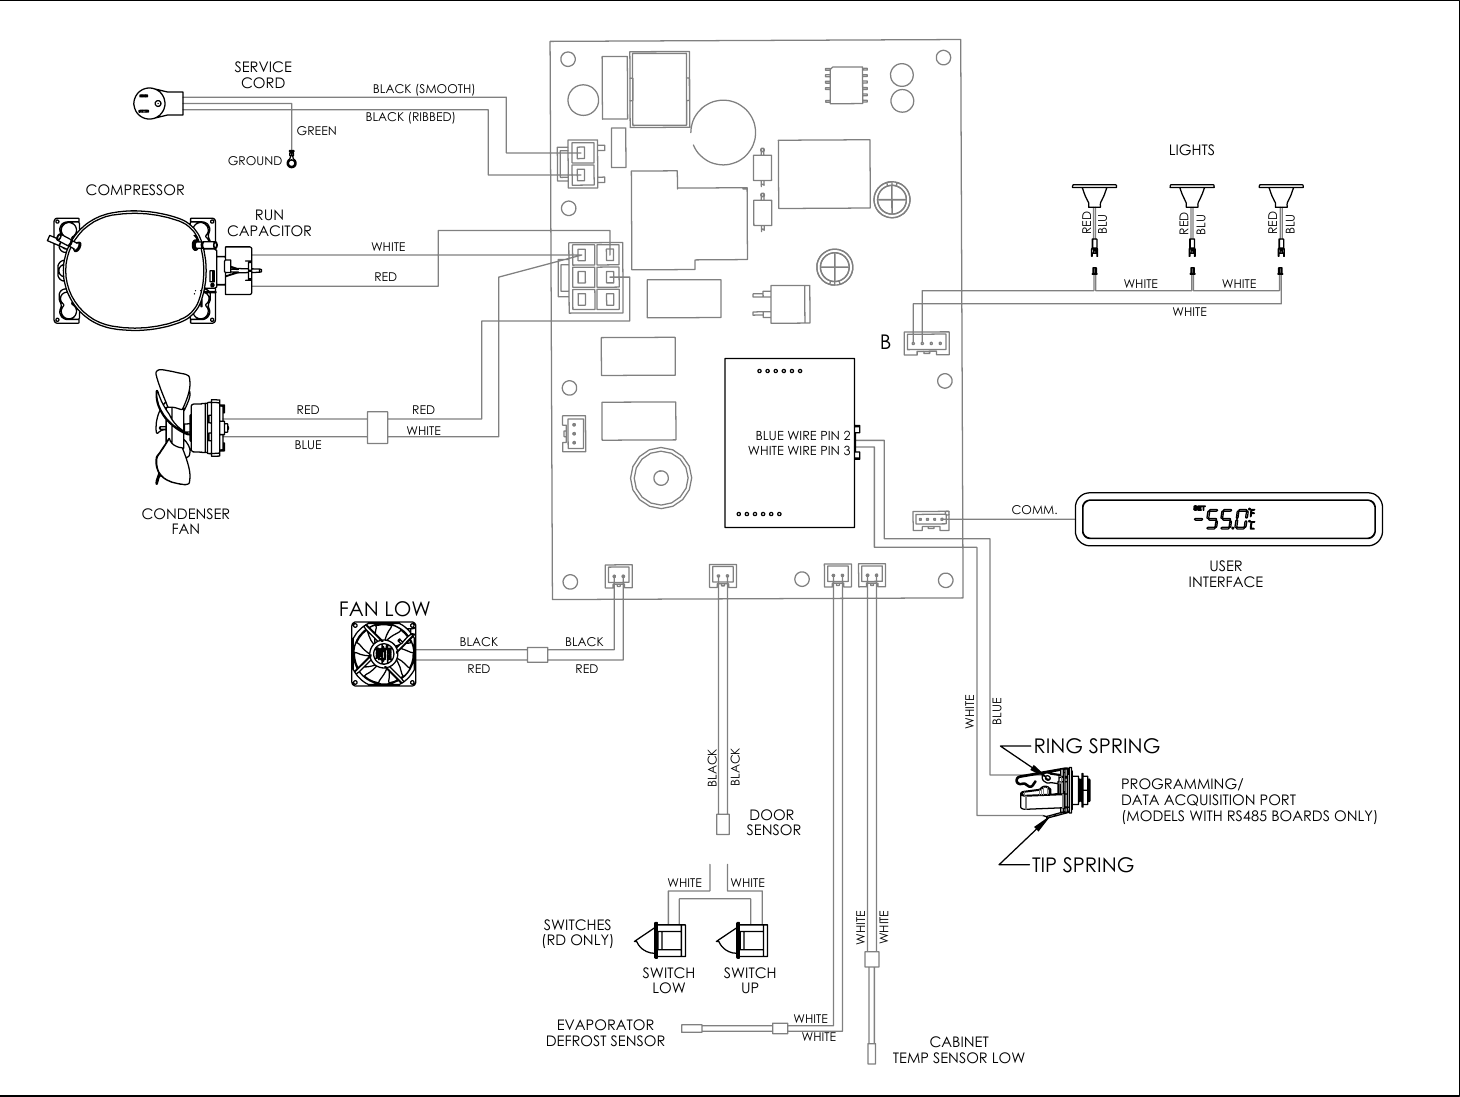 electrolux double oven schematic, electrolux refrigerator fuse, microwave wiring schematic, electrolux refrigerator troubleshooting, electrolux vacuum parts diagram, electrolux refrigerator capacitors, electrolux wiring-diagram, on electrolux refrigerator wiring schematic